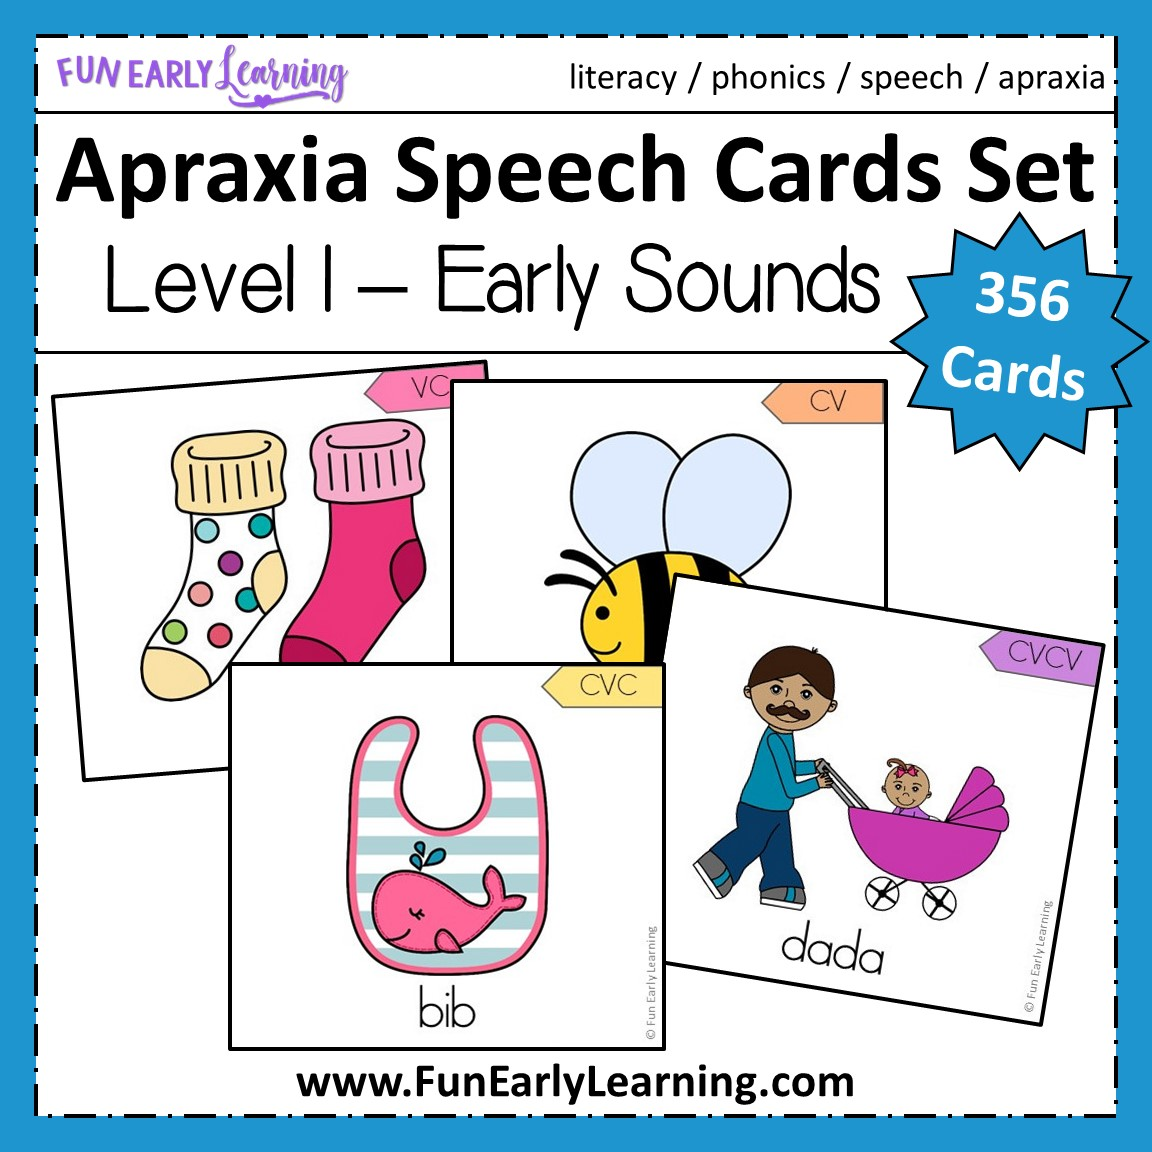 apraxia speech cards set level 1 early sounds for speech therapy